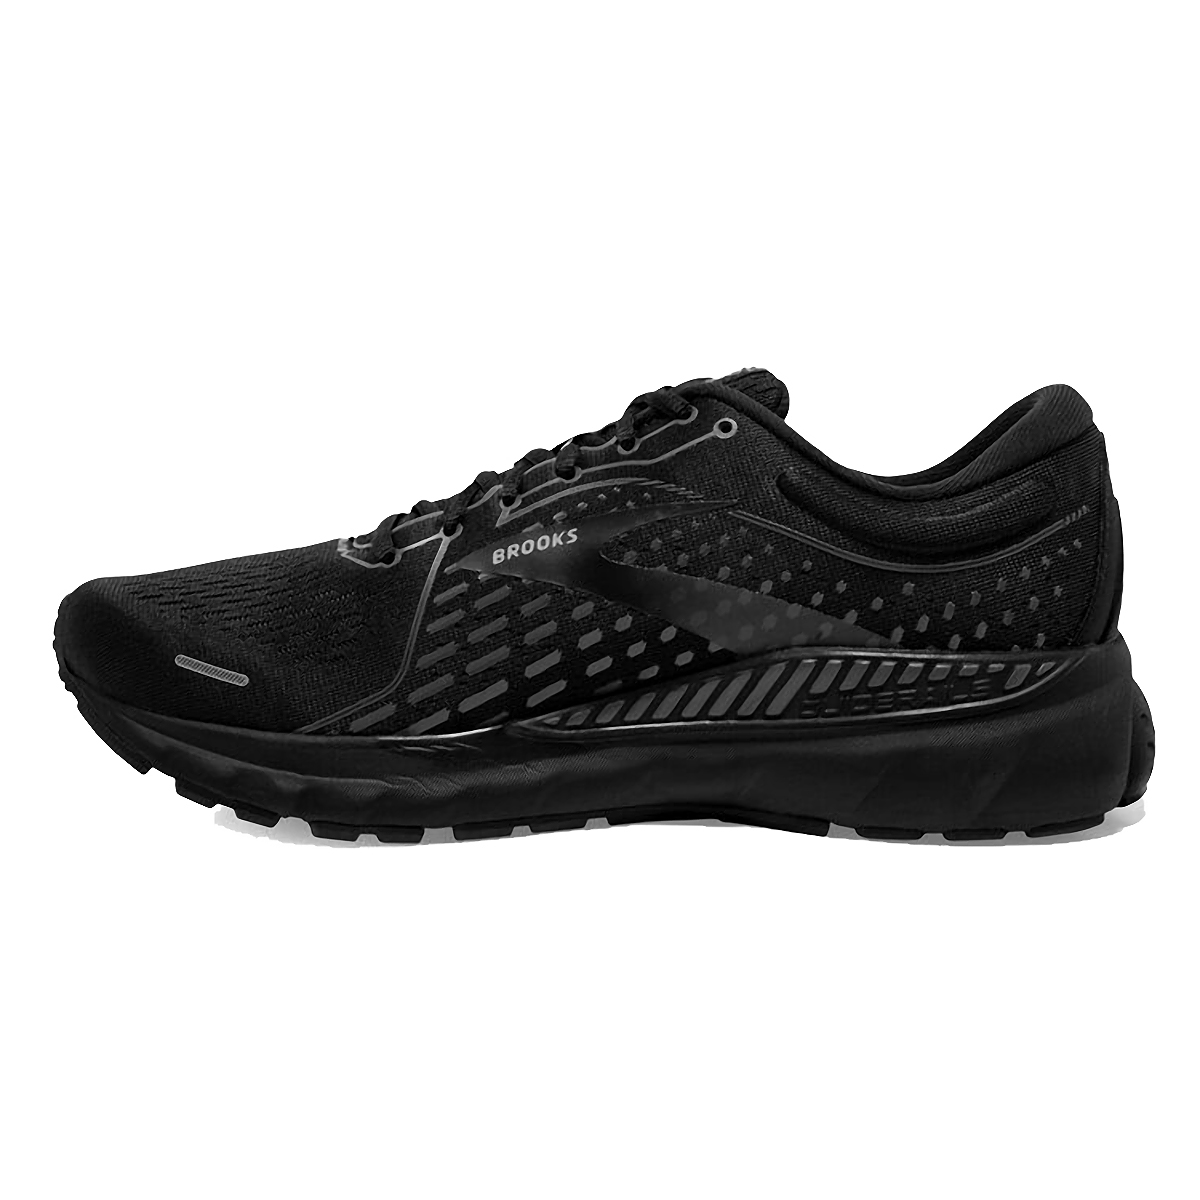 Men's Brooks Adrenaline GTS 21 Running Shoe - Color: Black/Black/Ebony - Size: 7 - Width: Regular, Black/Black/Ebony, large, image 2